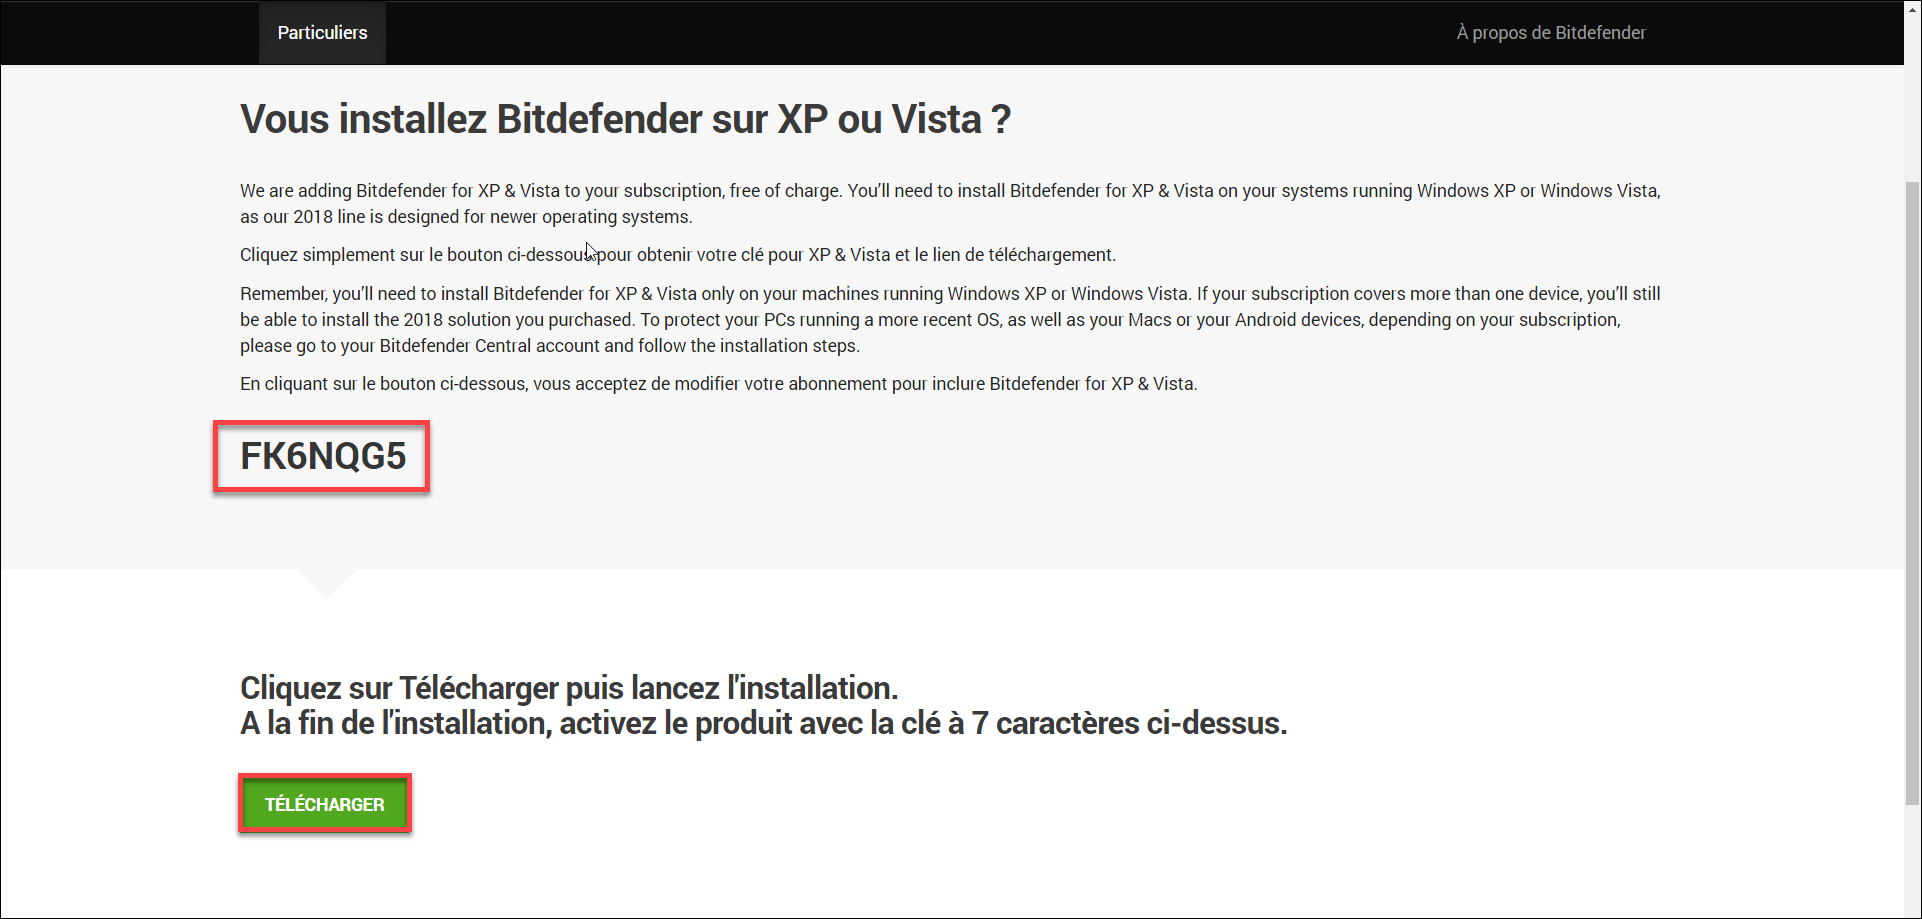 comment installer bitdefender sur windows xp et windows vista. Black Bedroom Furniture Sets. Home Design Ideas